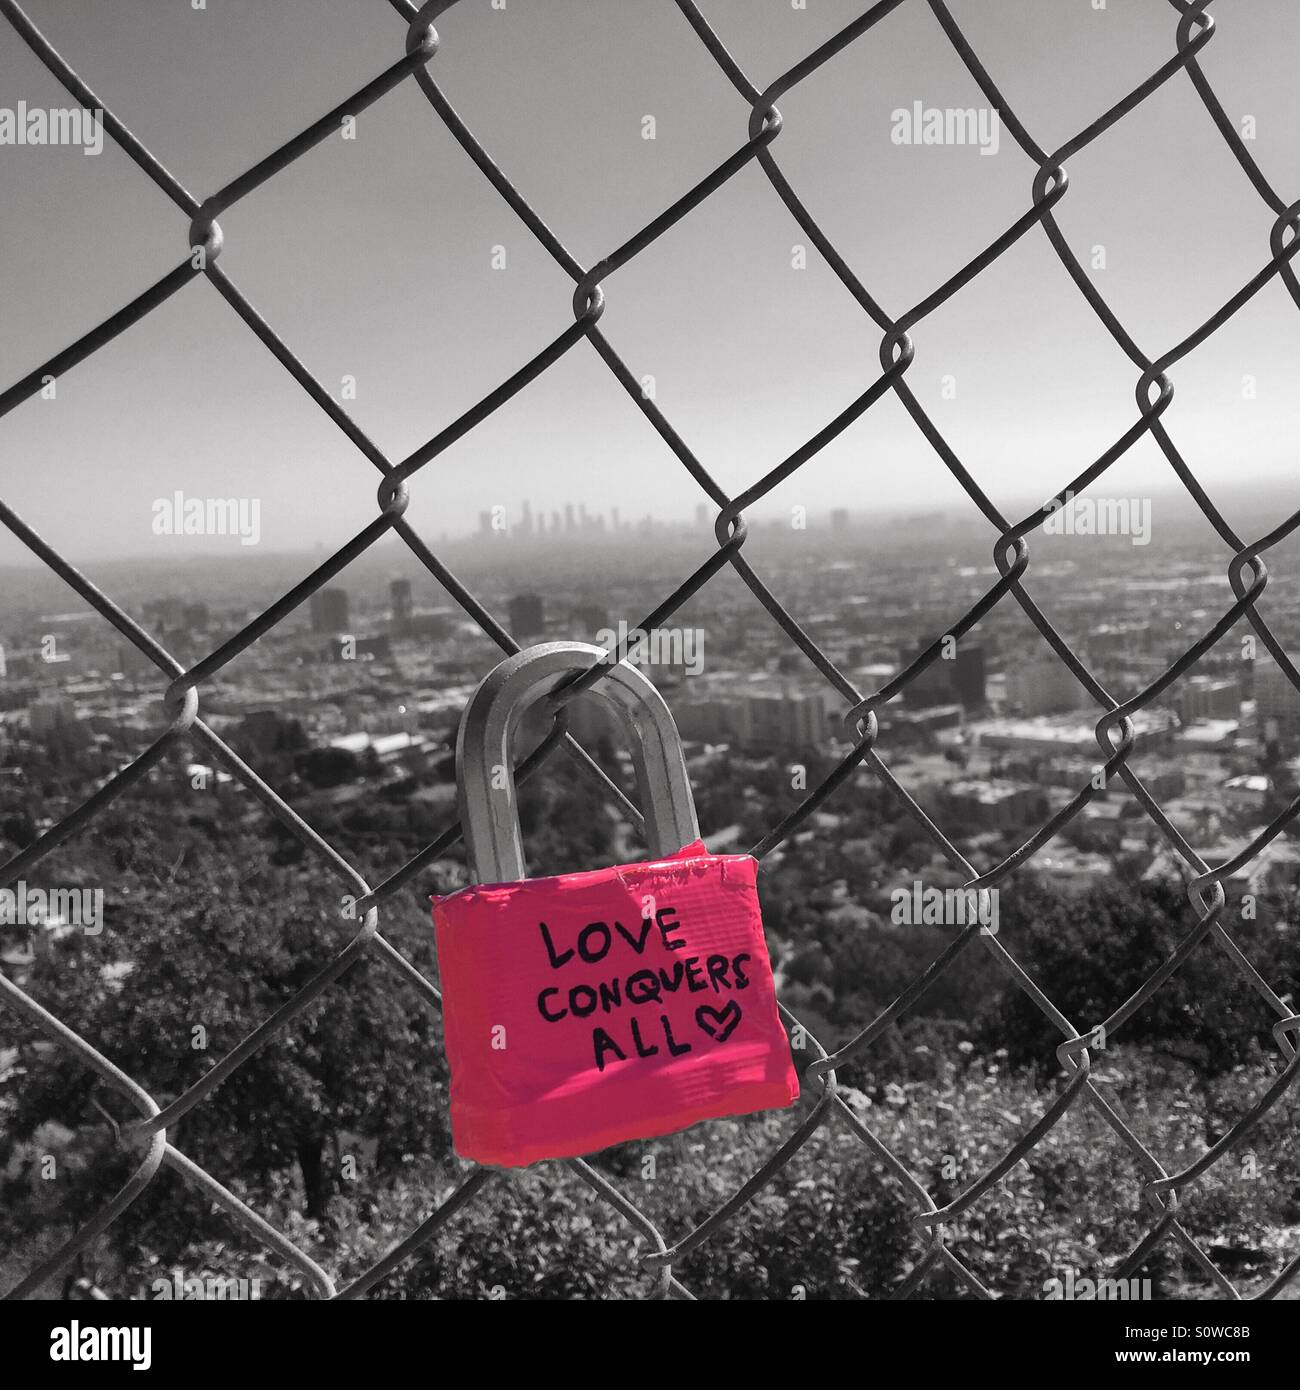 Love conquers all - Stock Image